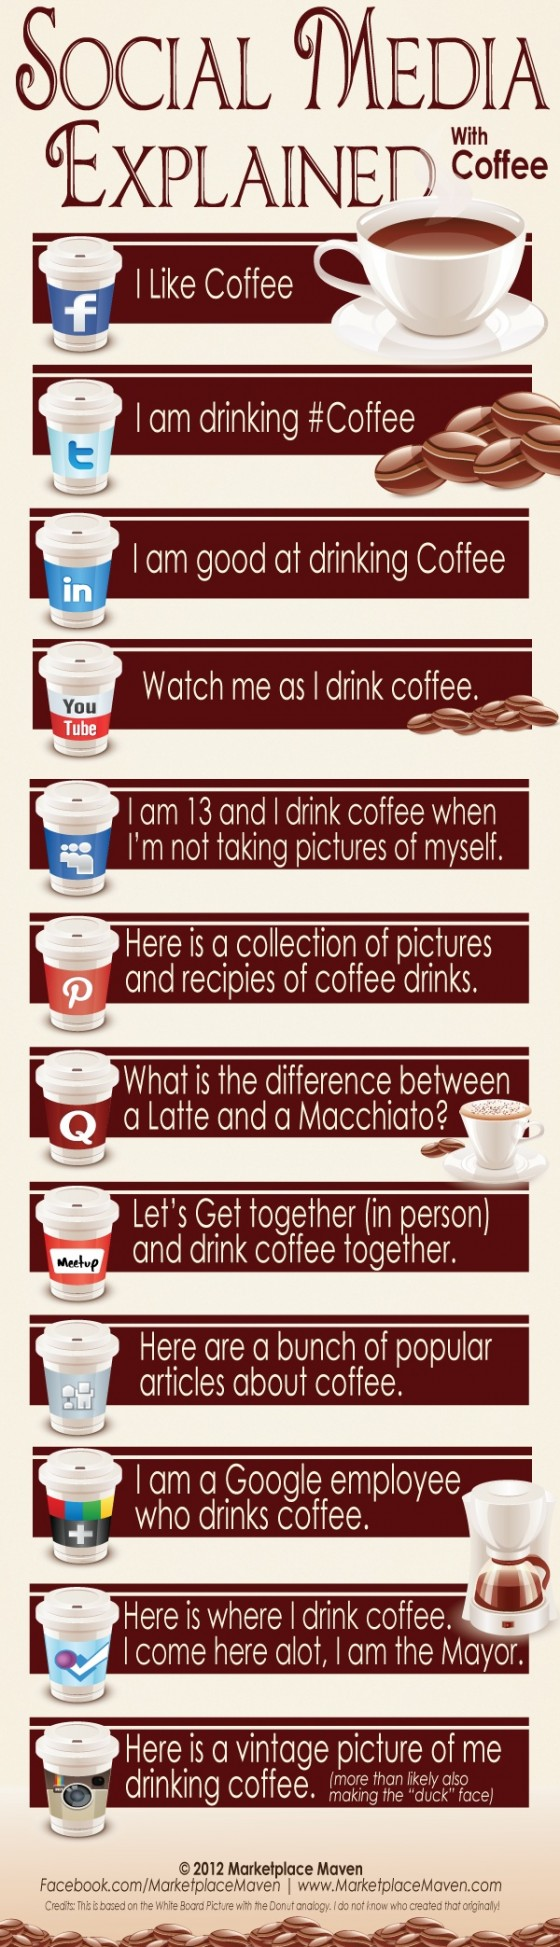 infographic showing social media defined as types of coffee drinks